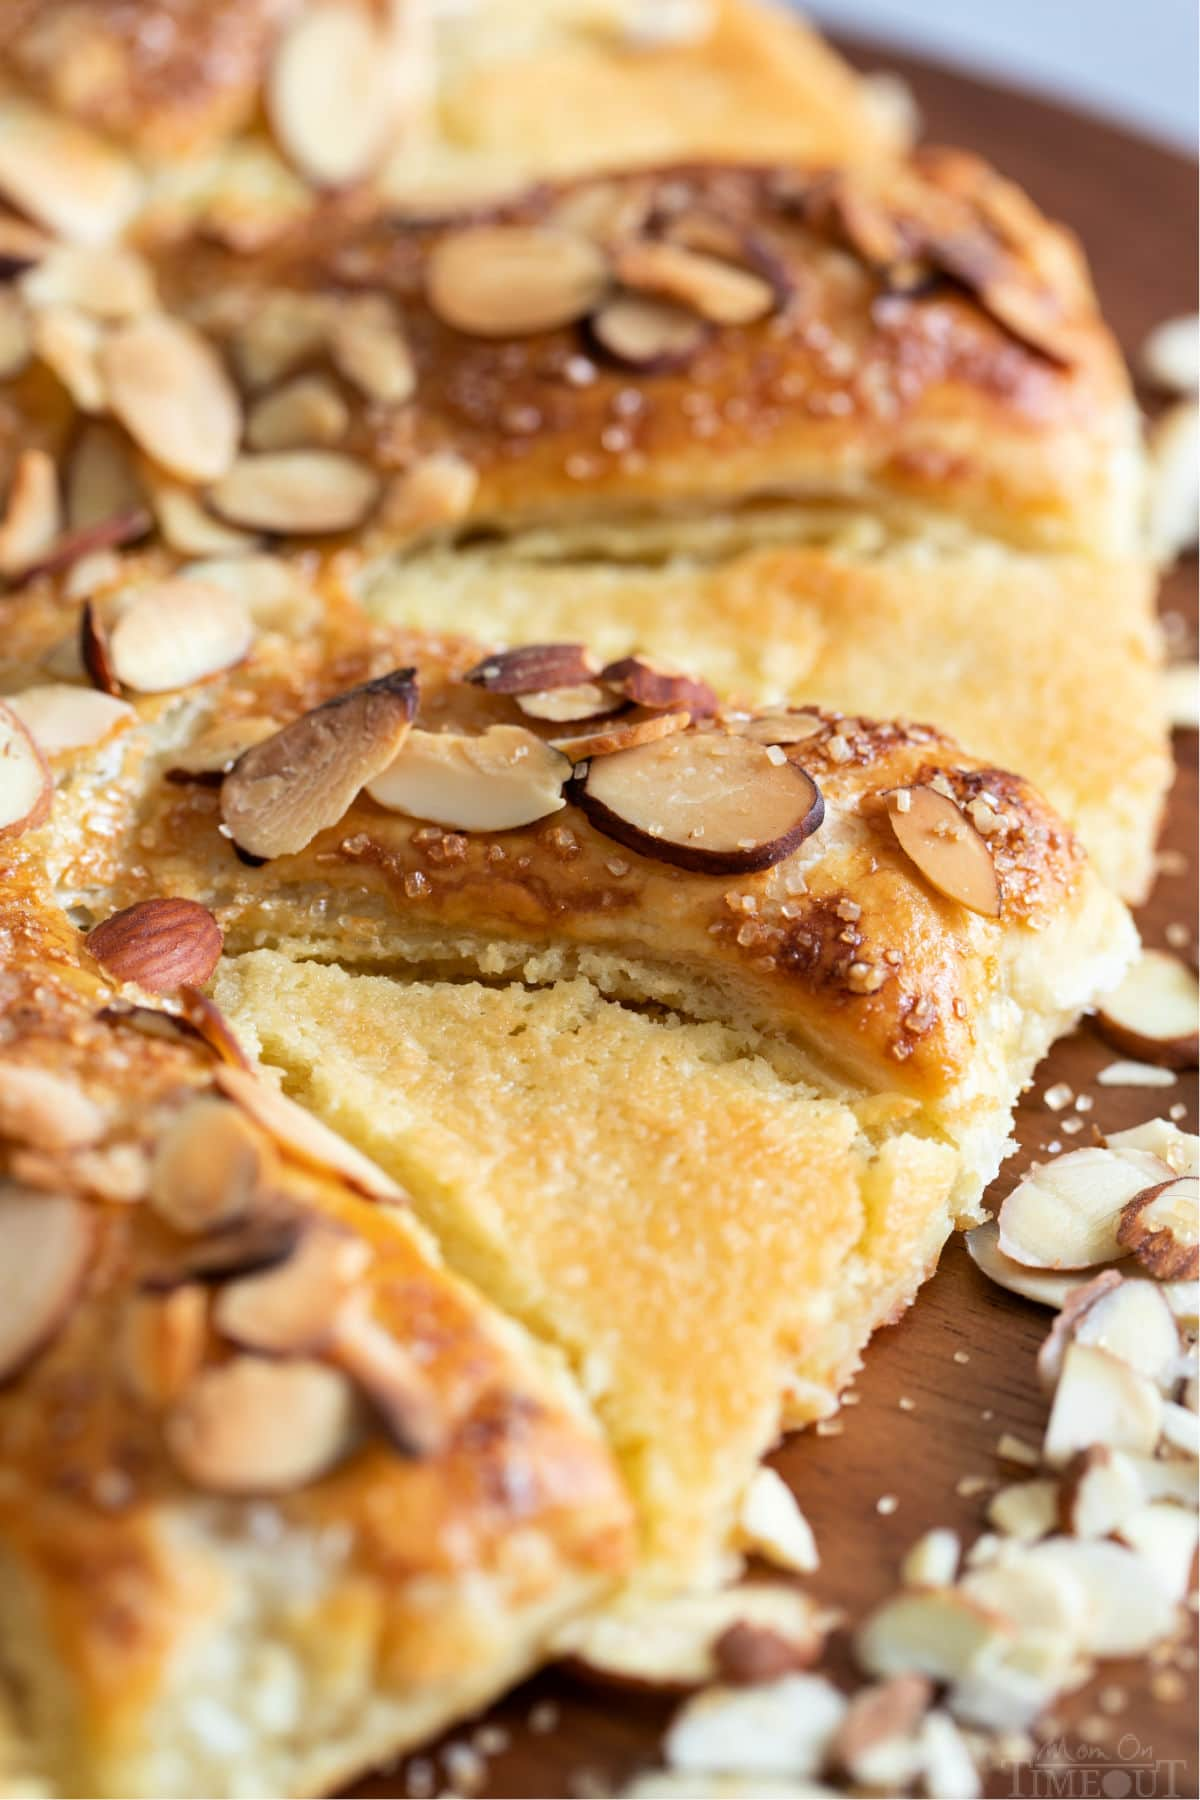 close up of bear claw pastry with almonds on top